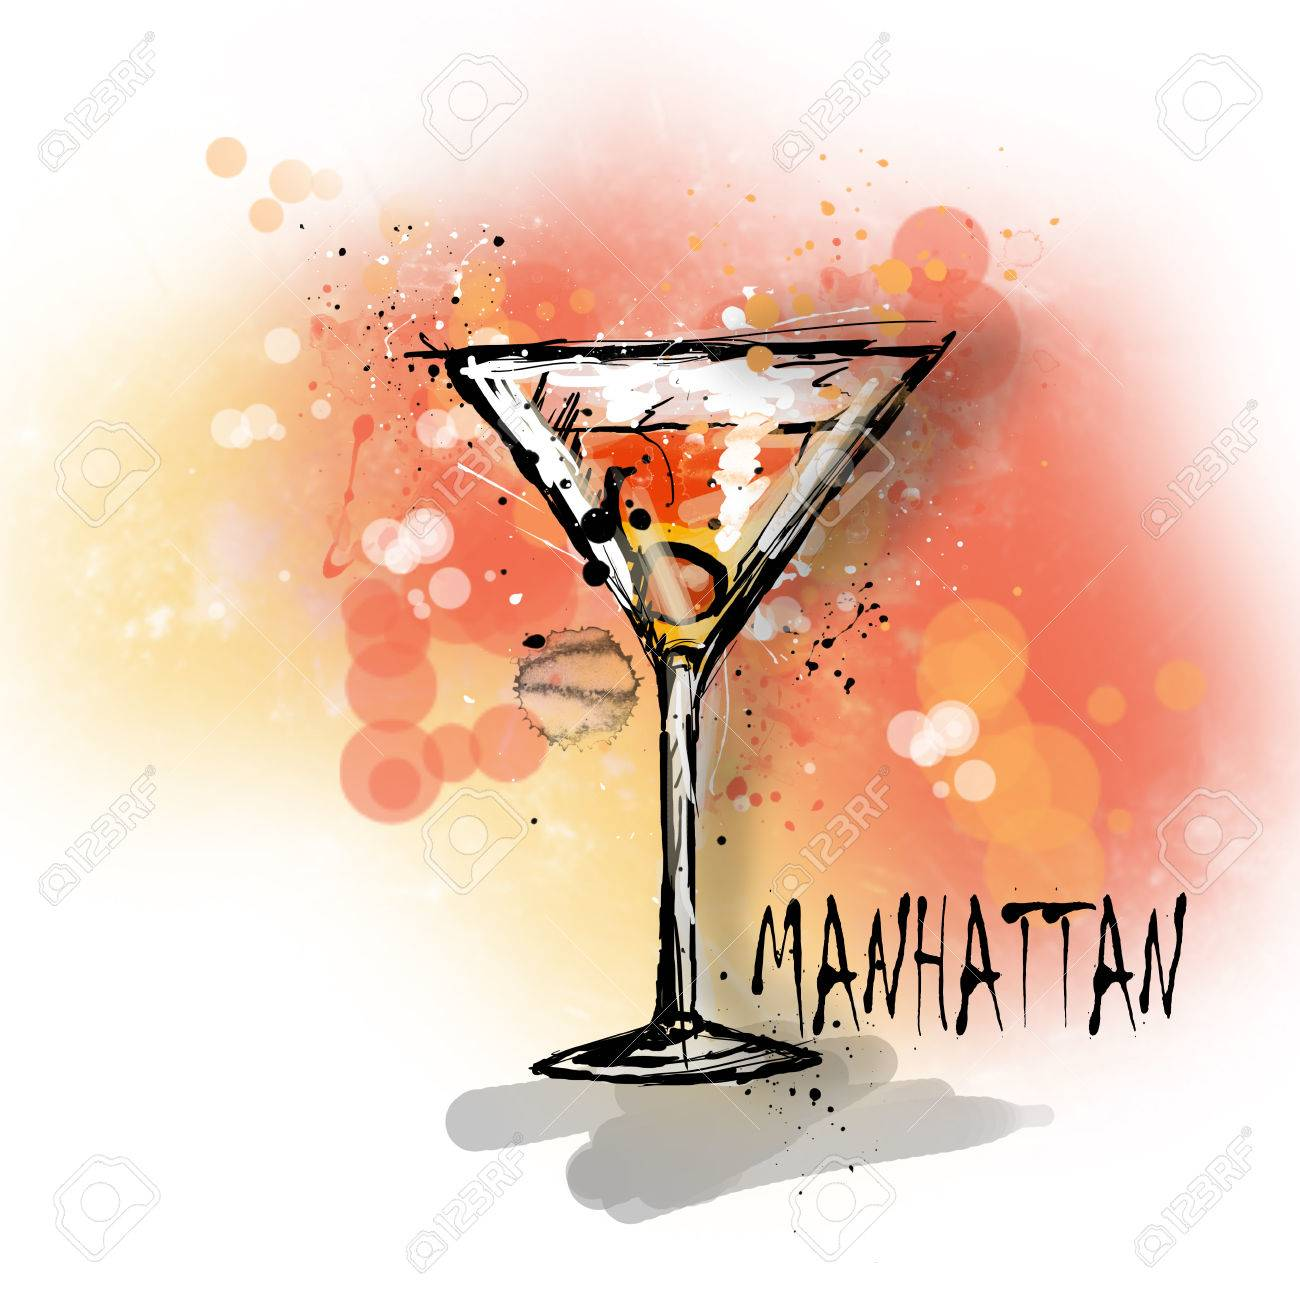 Hand Drawn Illustration Of Cocktail Manhattan Cocktail Stock Photo Picture And Royalty Free Image Image 67734158